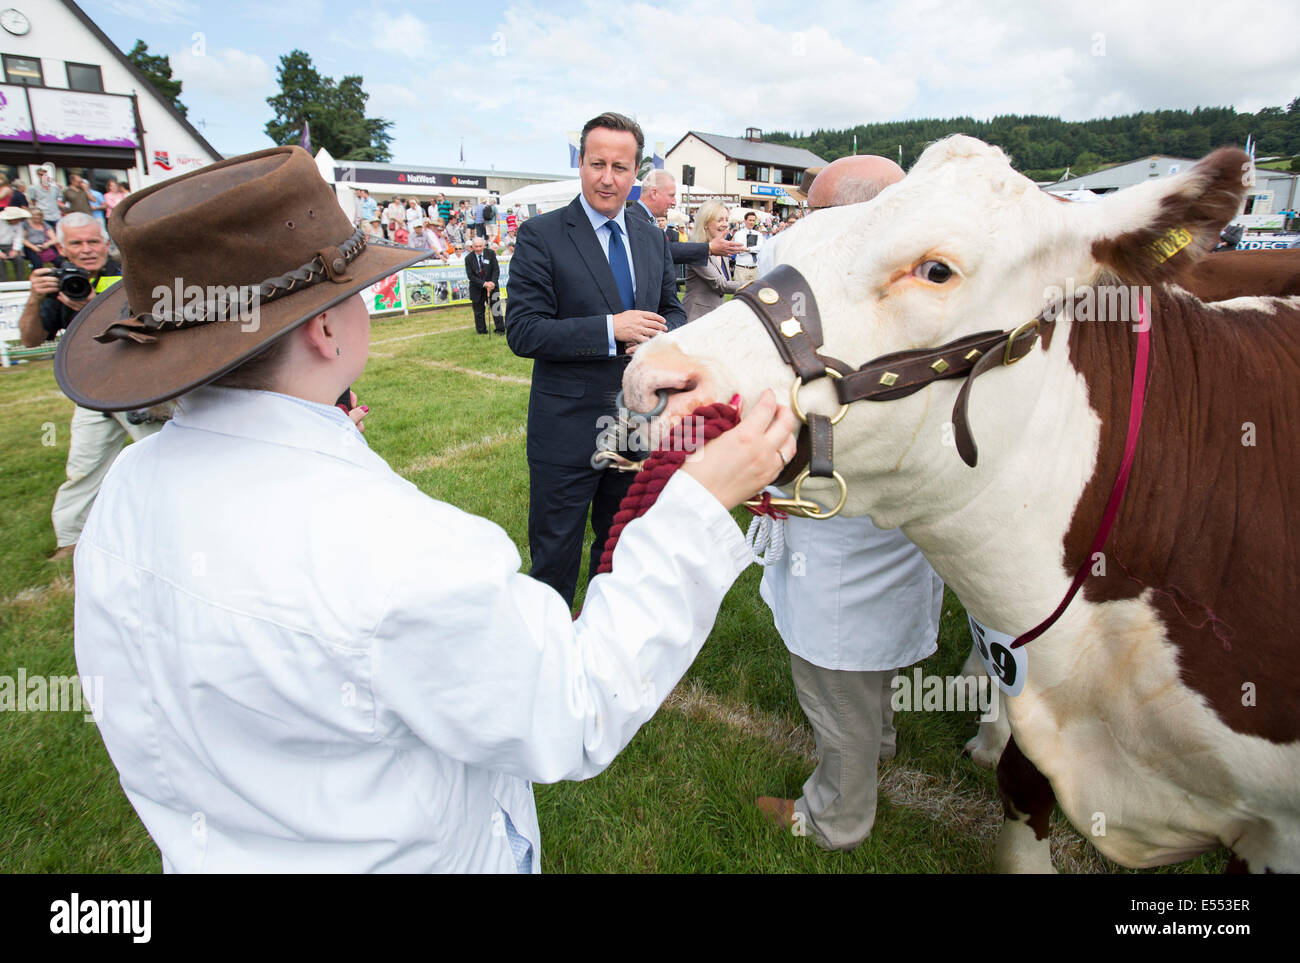 Prime Minister David Cameron meets Cattle Farmers at the Royal Welsh Show, Builth Wells Stock Photo